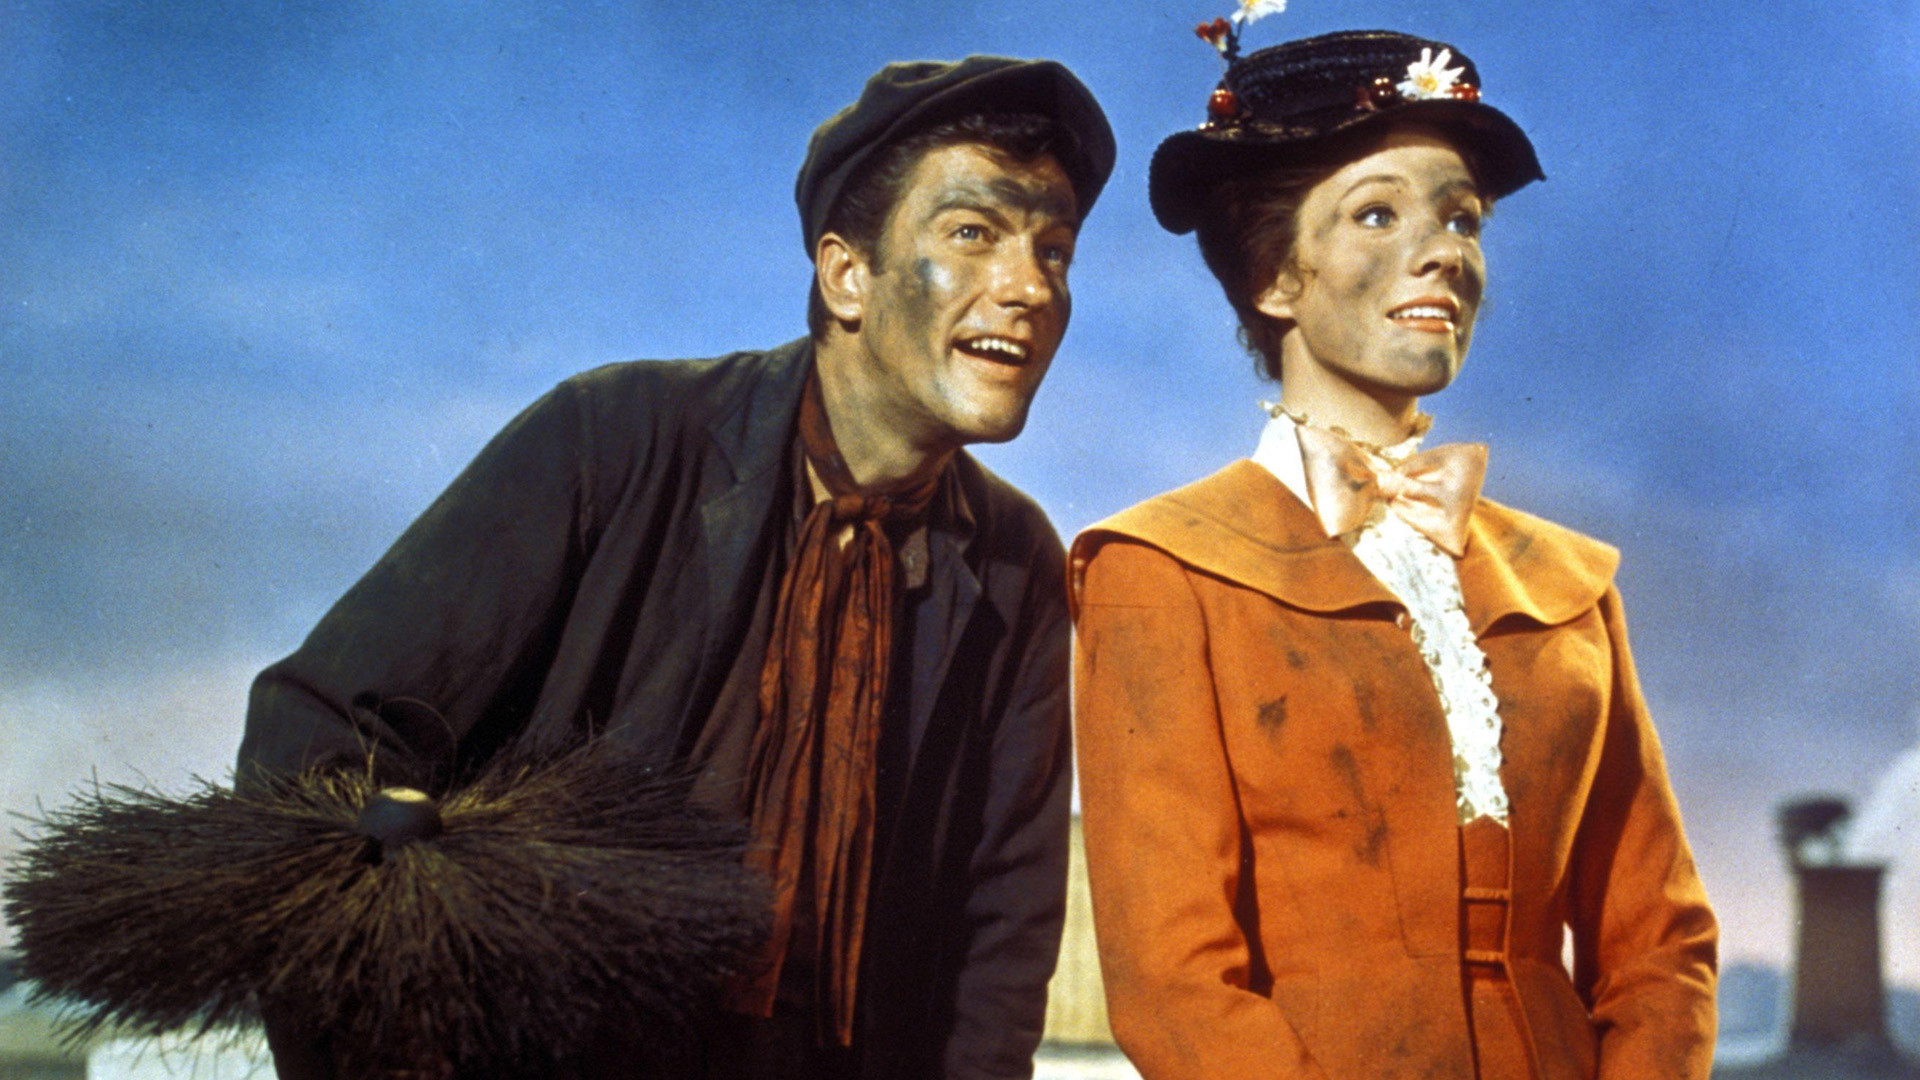 Dick Van Dyke's revelation about his Mary Poppins accent might make you feel sorry for him